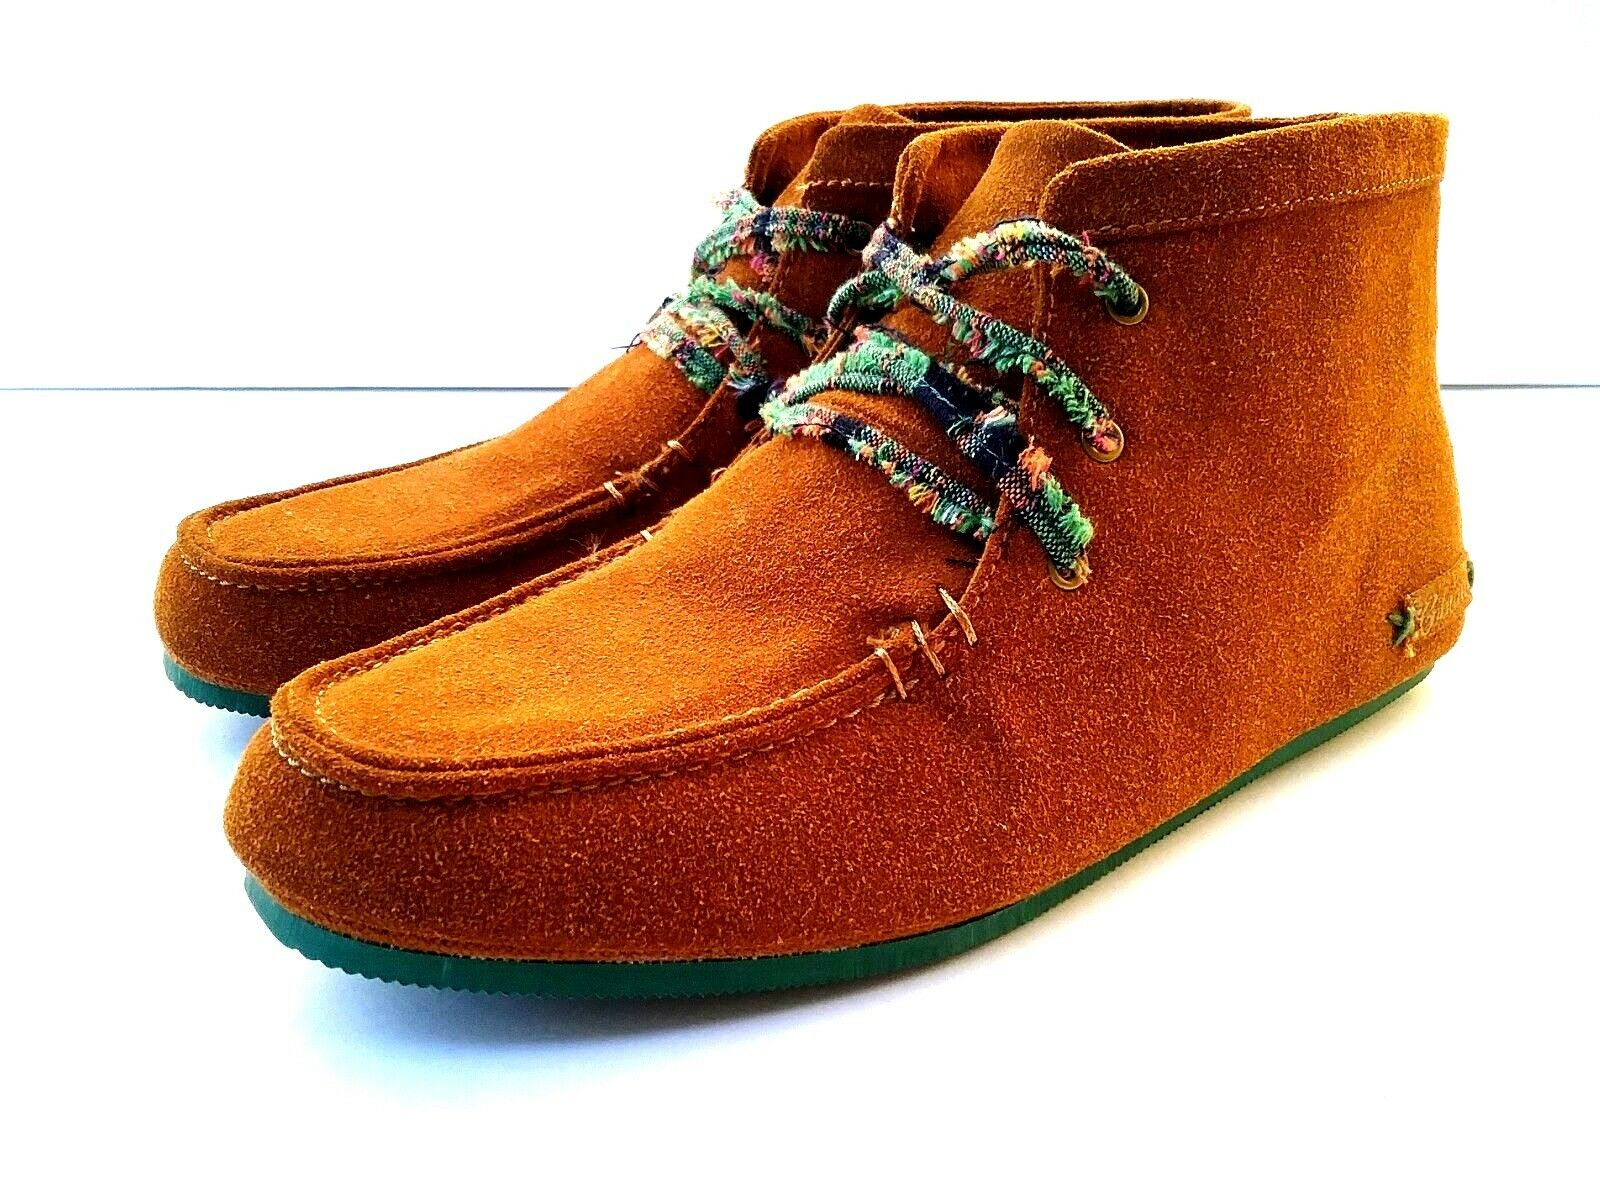 Cobian Willow Women's Chukka Boots Lace Up Suede Brown orange US 7